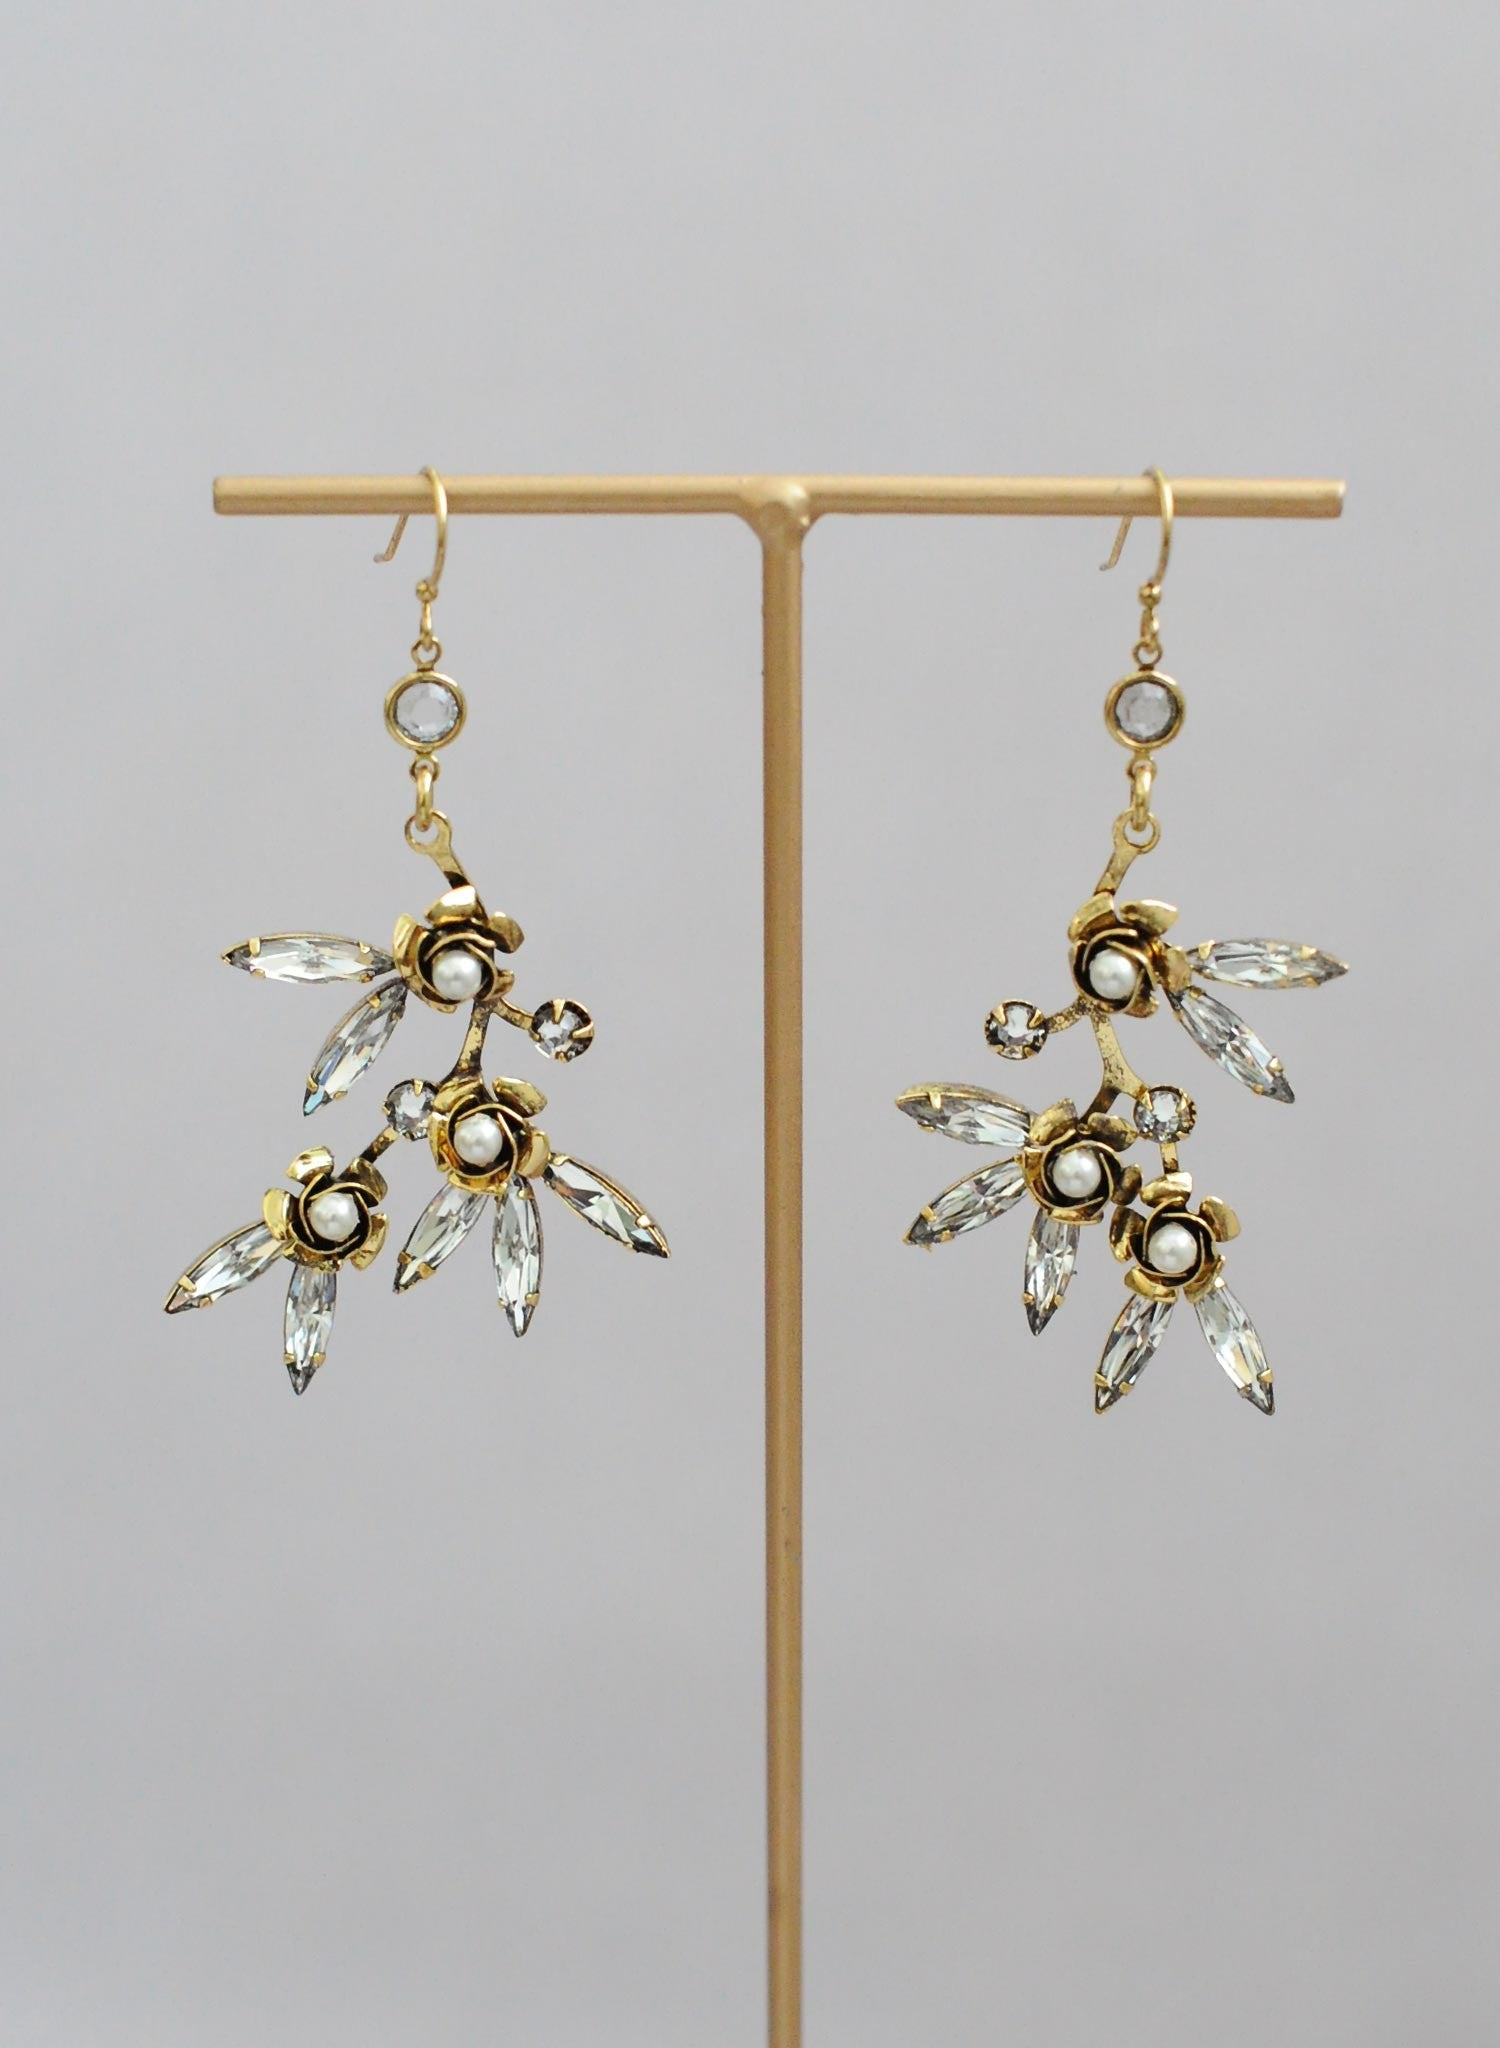 fde37ed6d ... Rosette and crystal earrings, twigs and honey, Swarovski crystals,  accessories ...